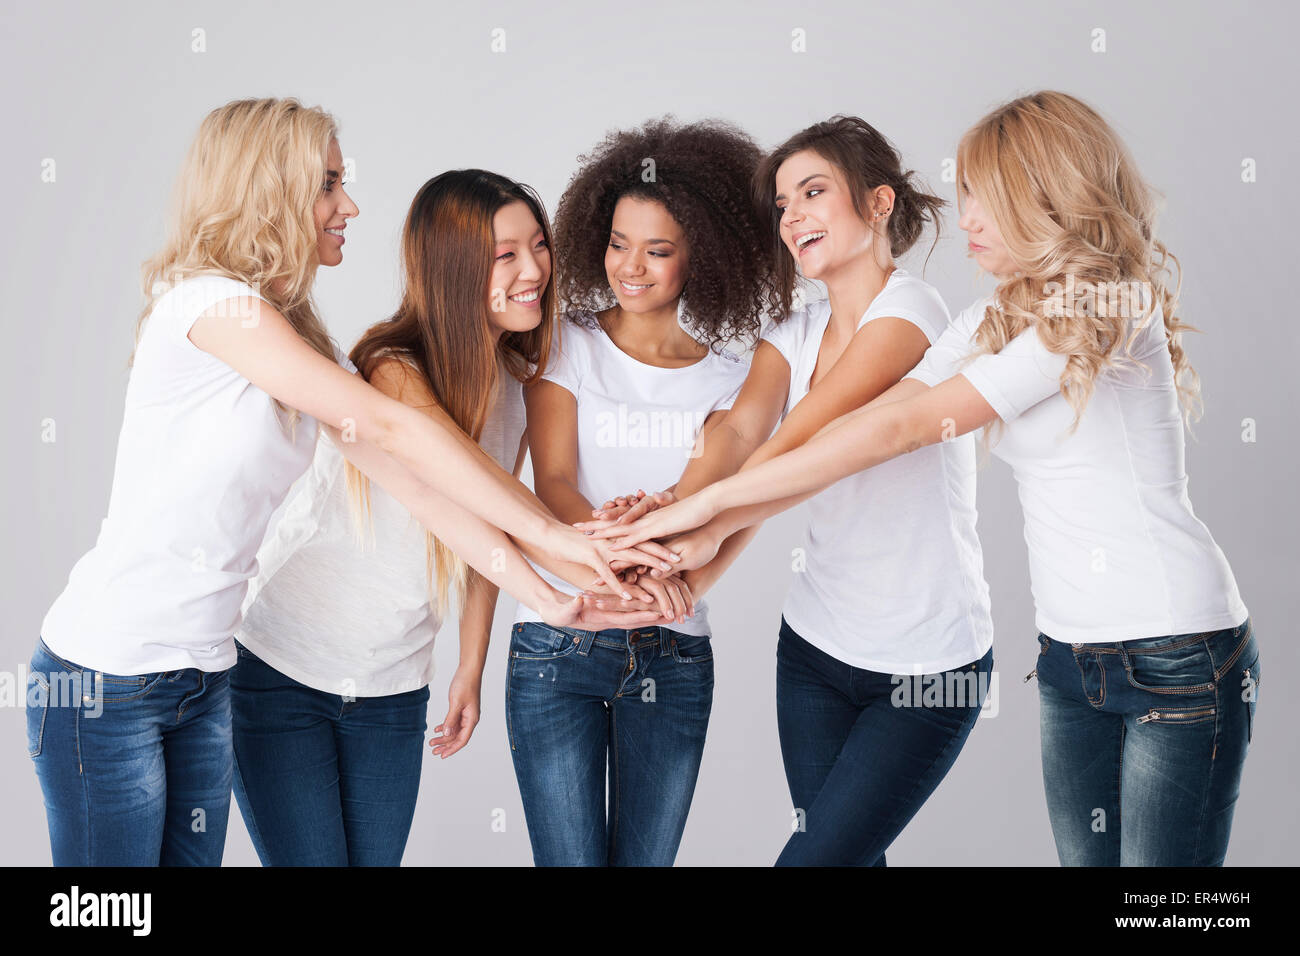 Cooperation in a team always brings benefits. Debica, Poland - Stock Image